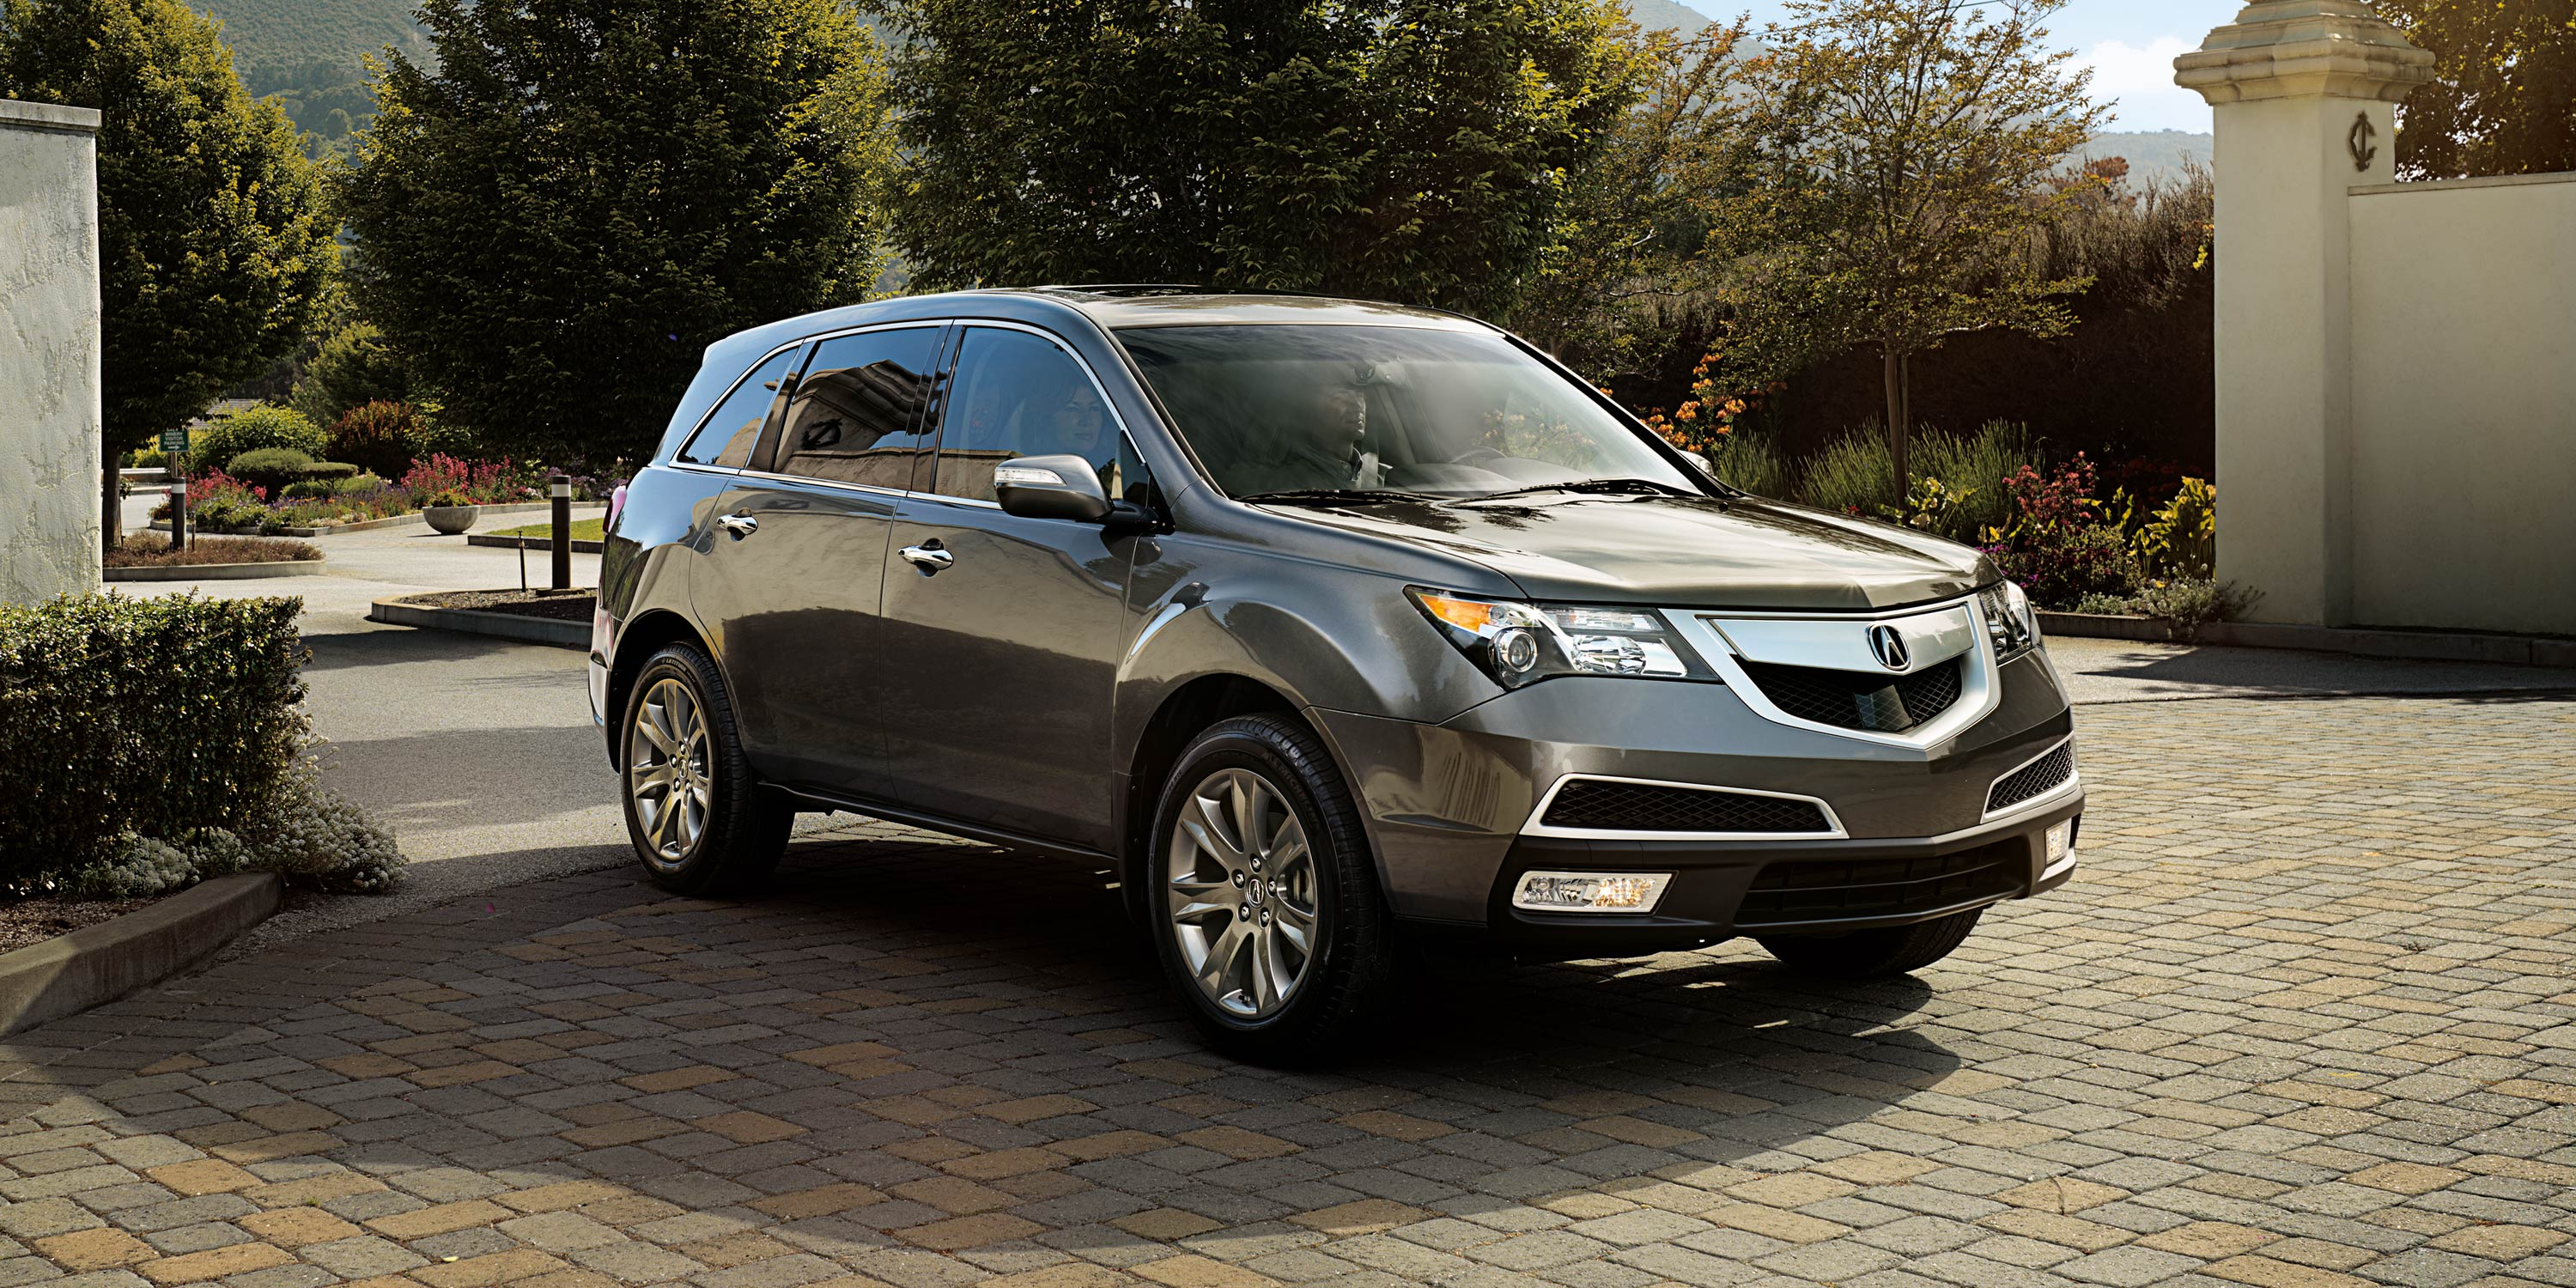 acura luxury suv autoweek reviews review article row a mdx car stalwart notes three